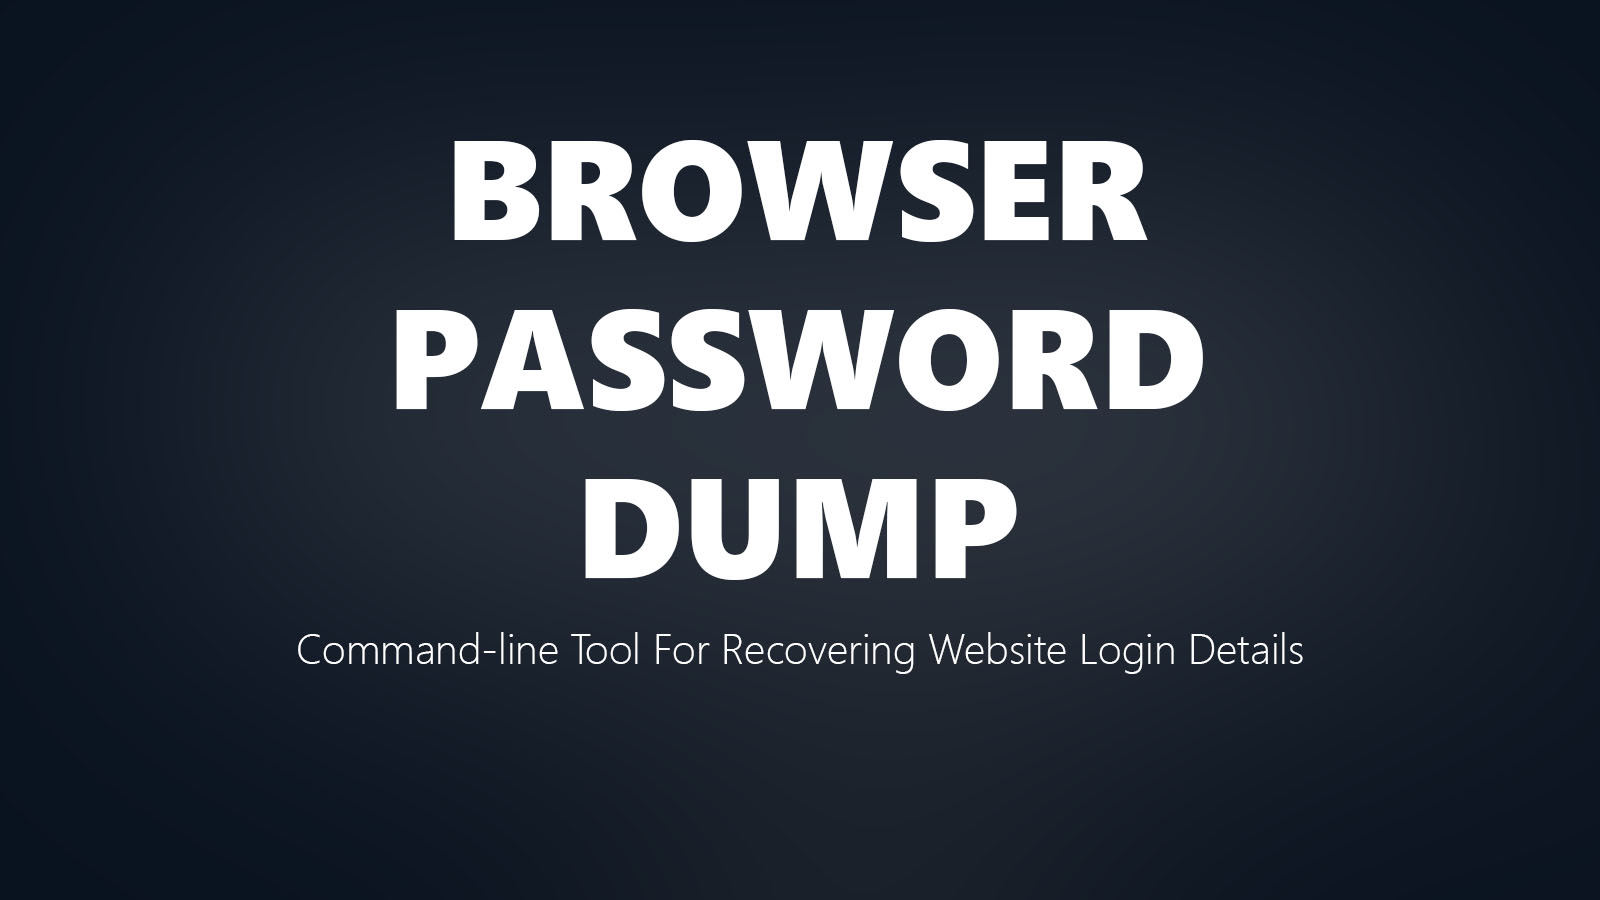 Browser Password Dump - Command-line Tool For Recovering Website Login Details From Popular Web Browsers